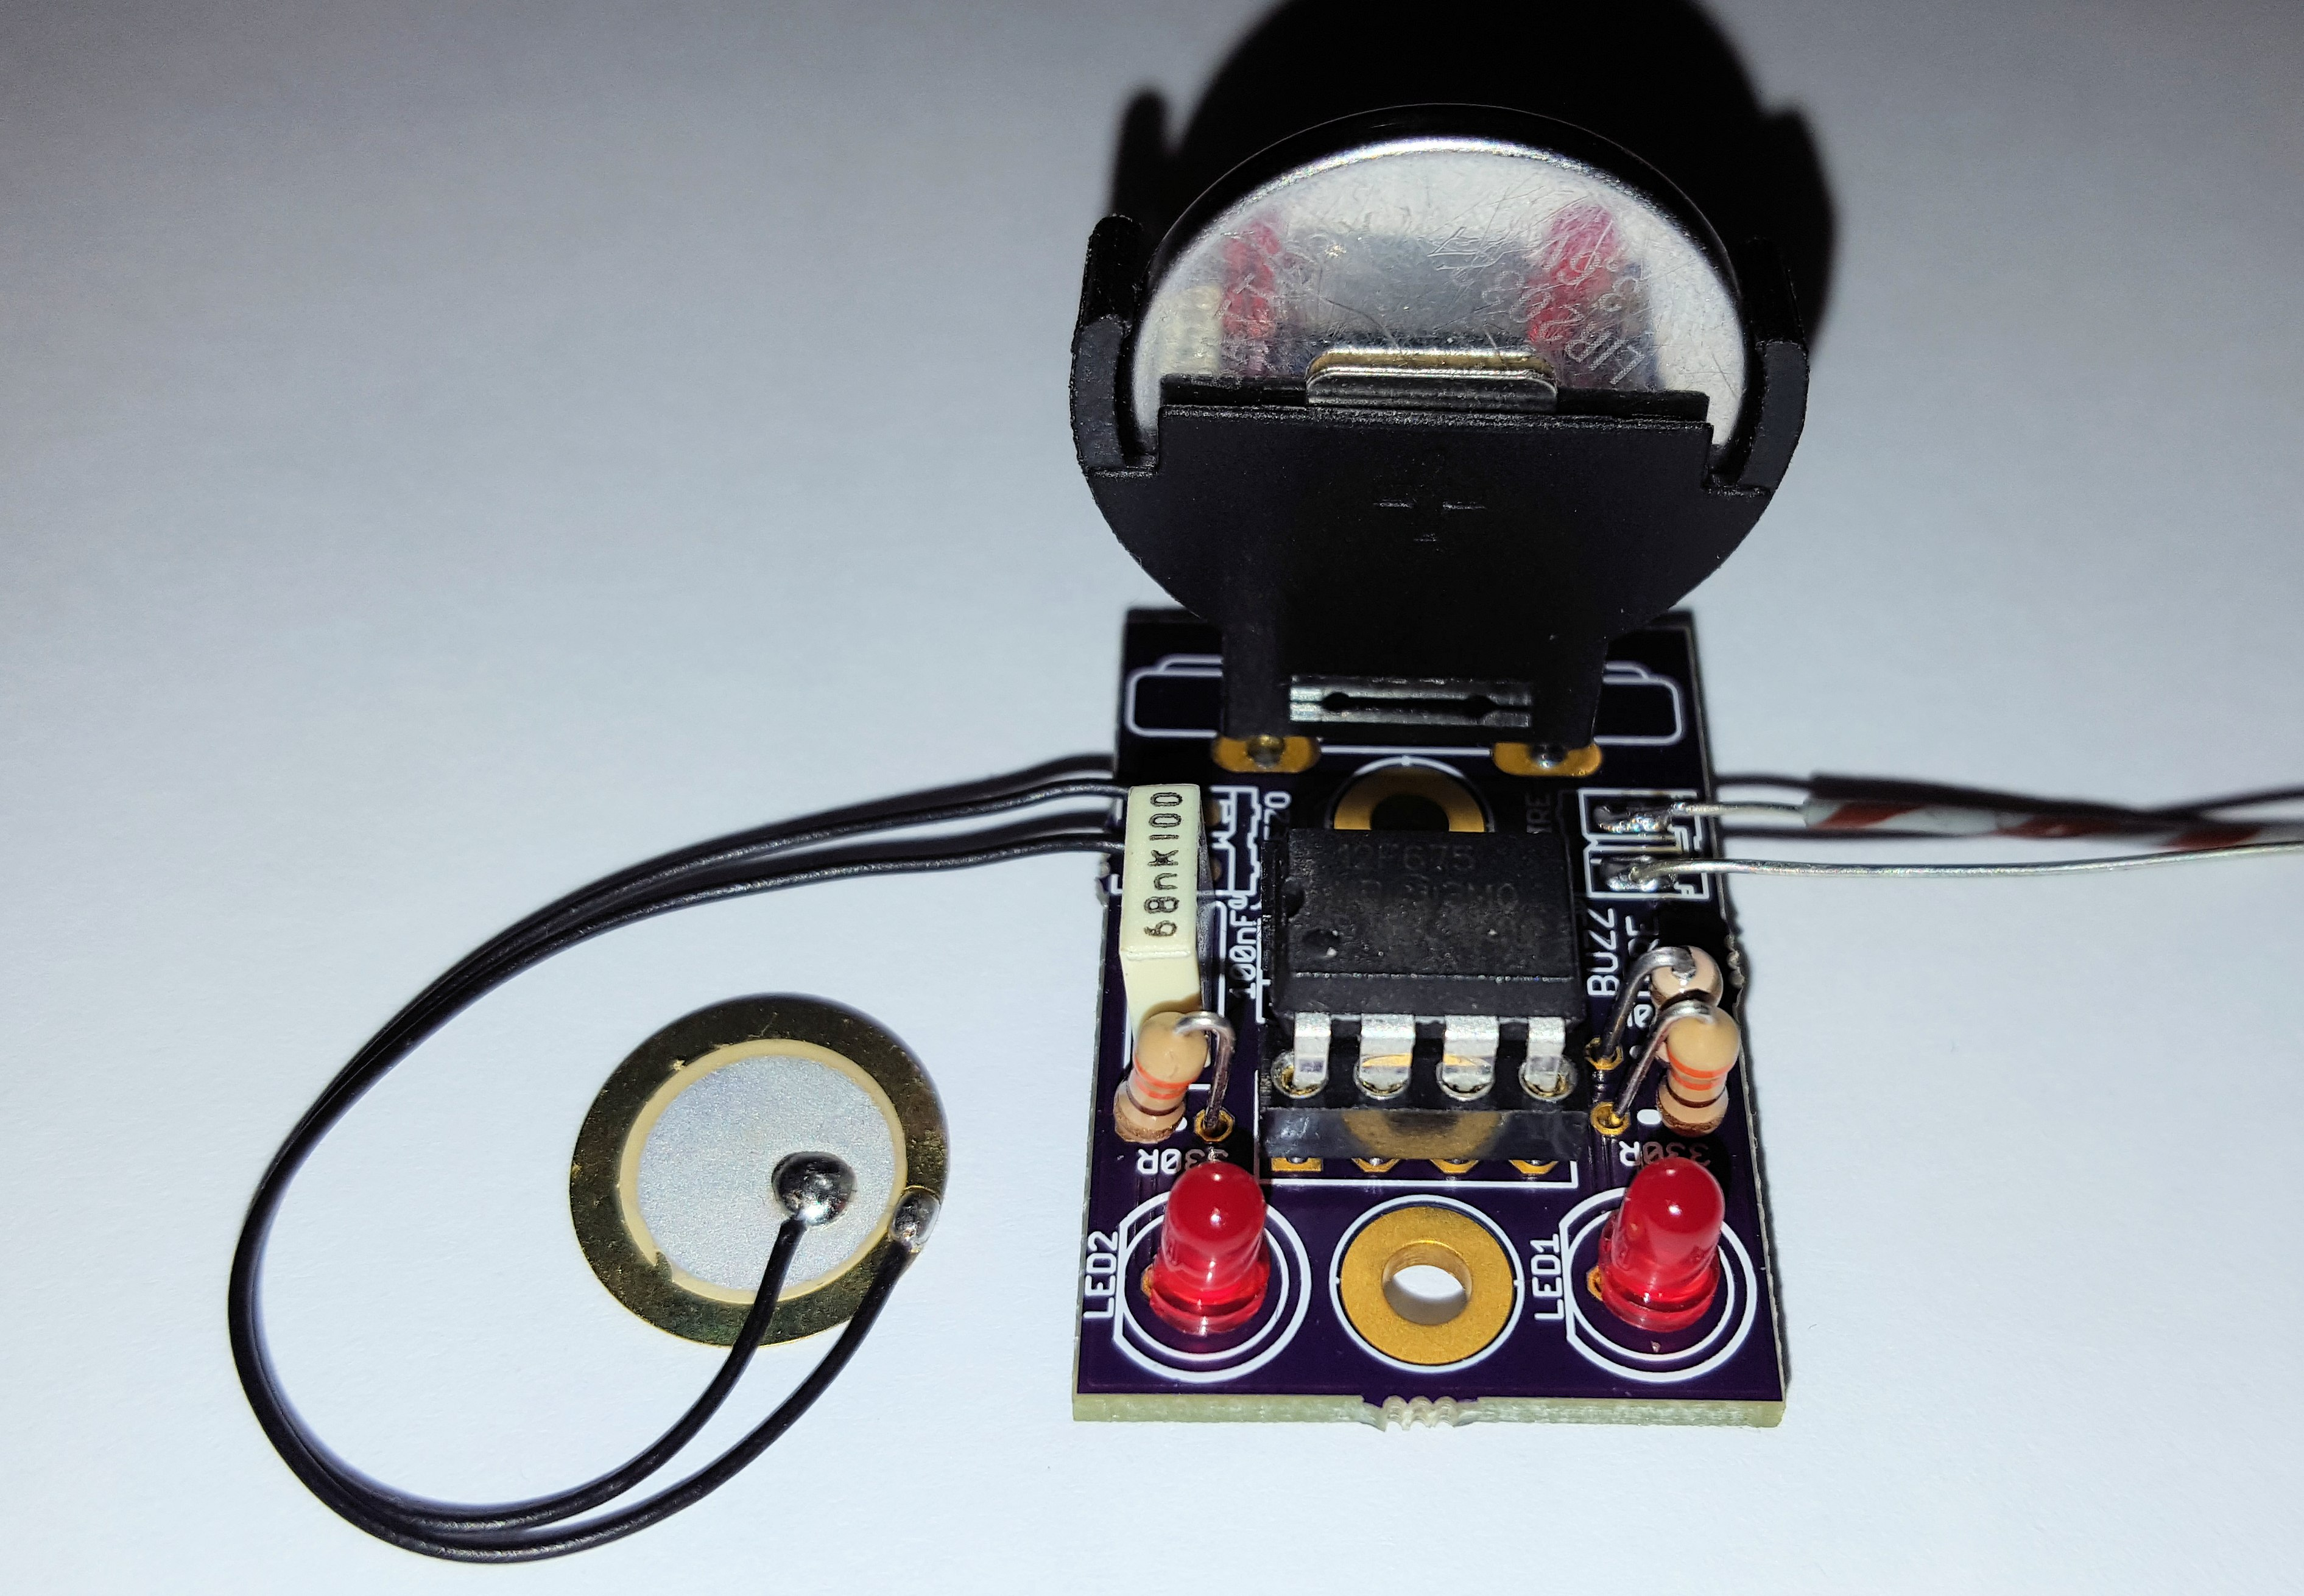 Buzz Wire Kit - The classic game for steady hands - Extreme Kits